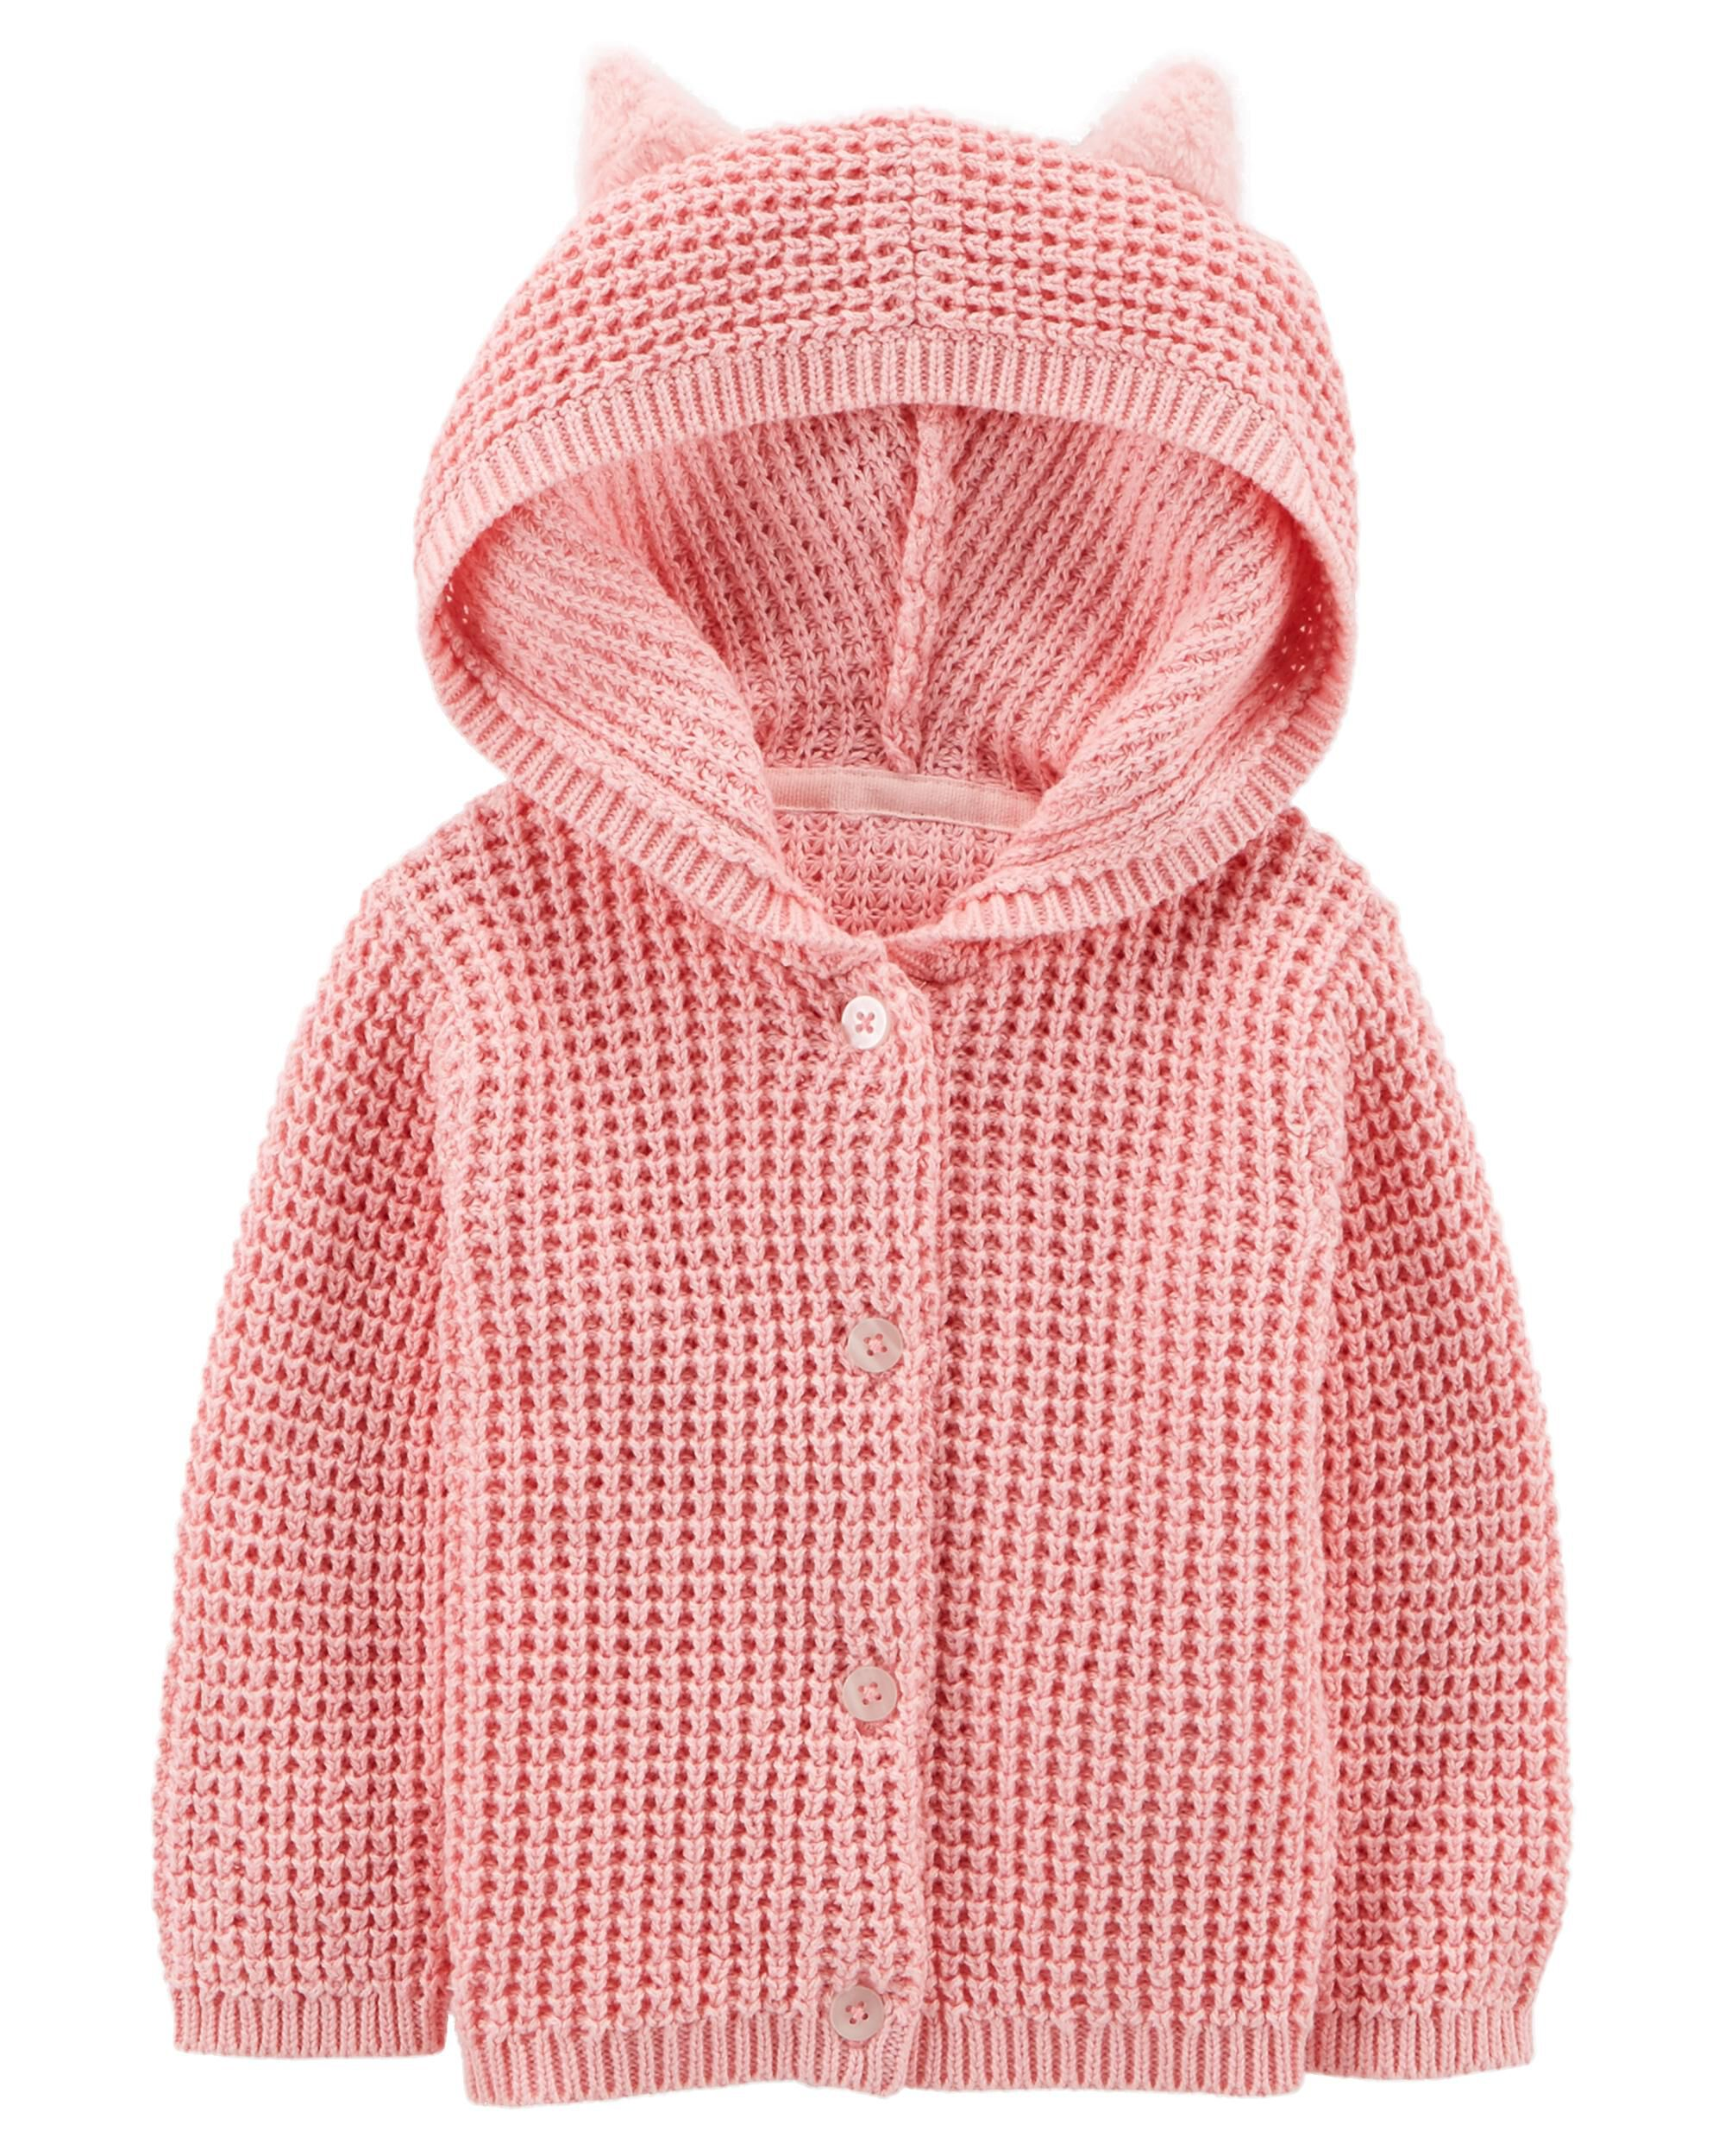 c3ec51a6b Carters Baby Girls Layering Pink 6 Months Carters 127G250 Sweaters